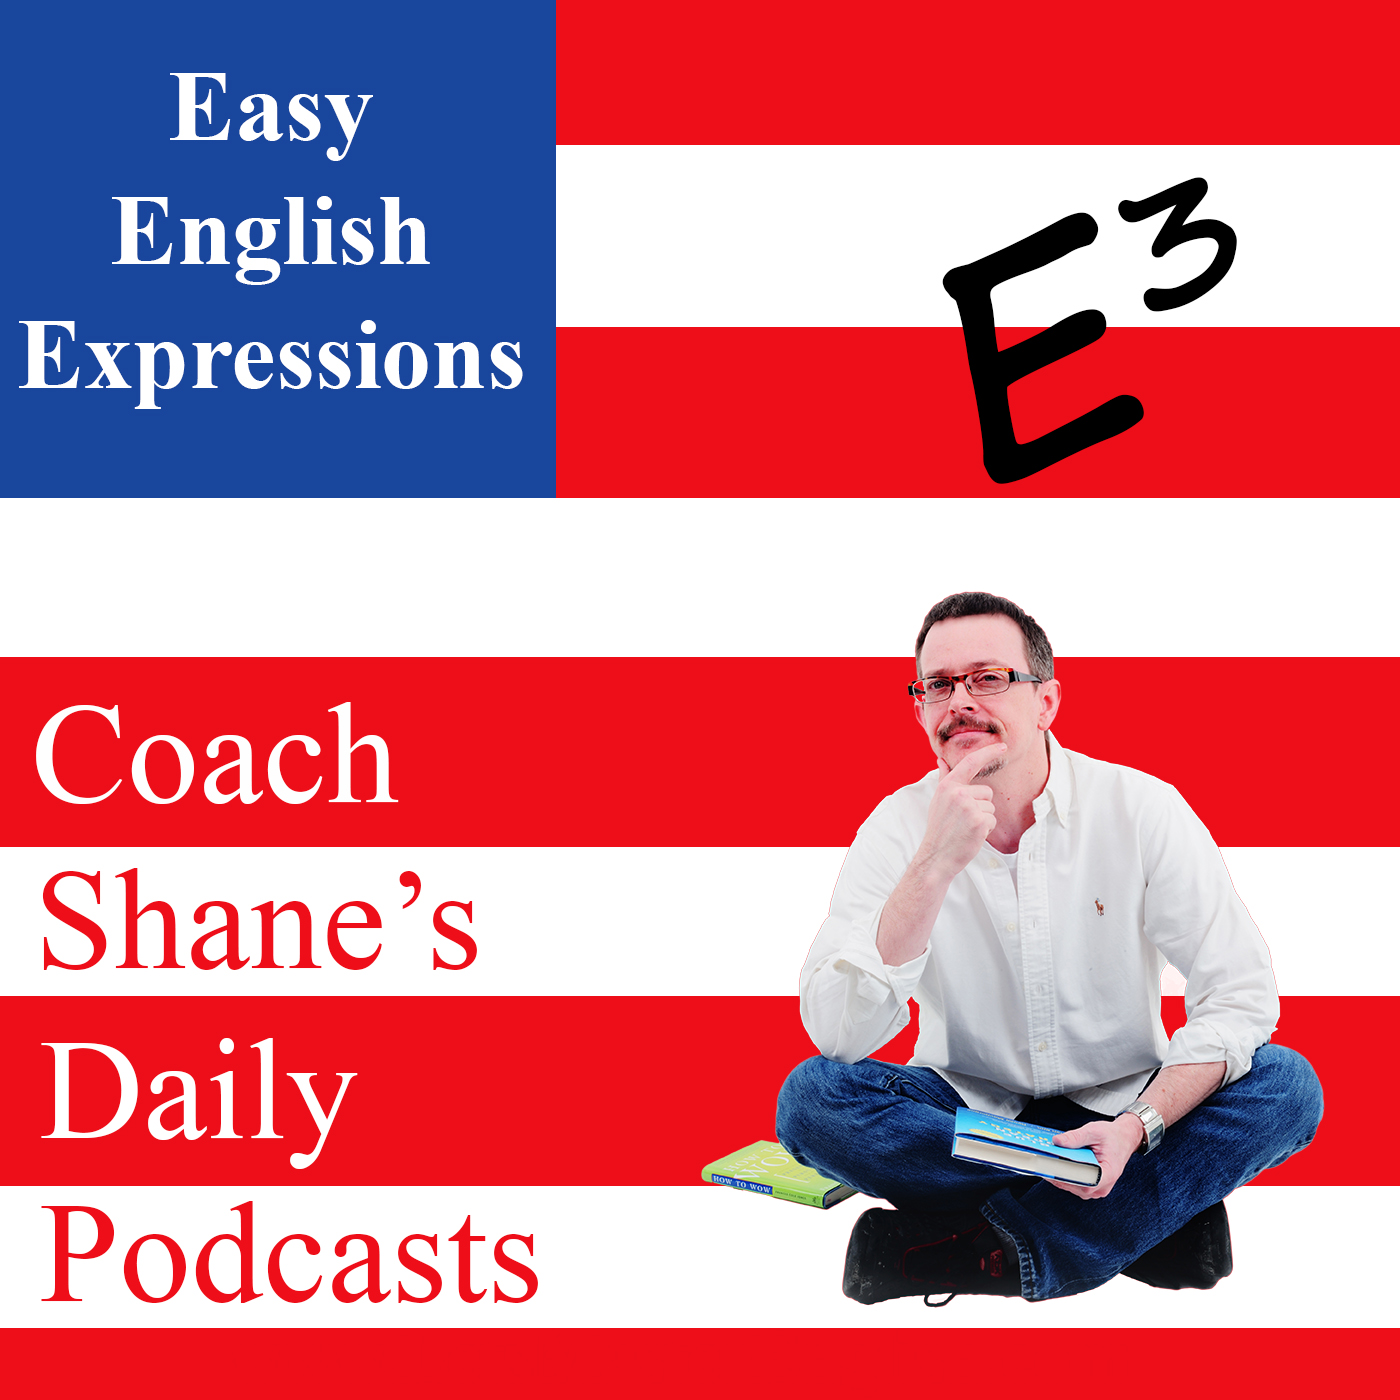 25 Daily Easy English Expression PODCAST—What purpose does it serve?